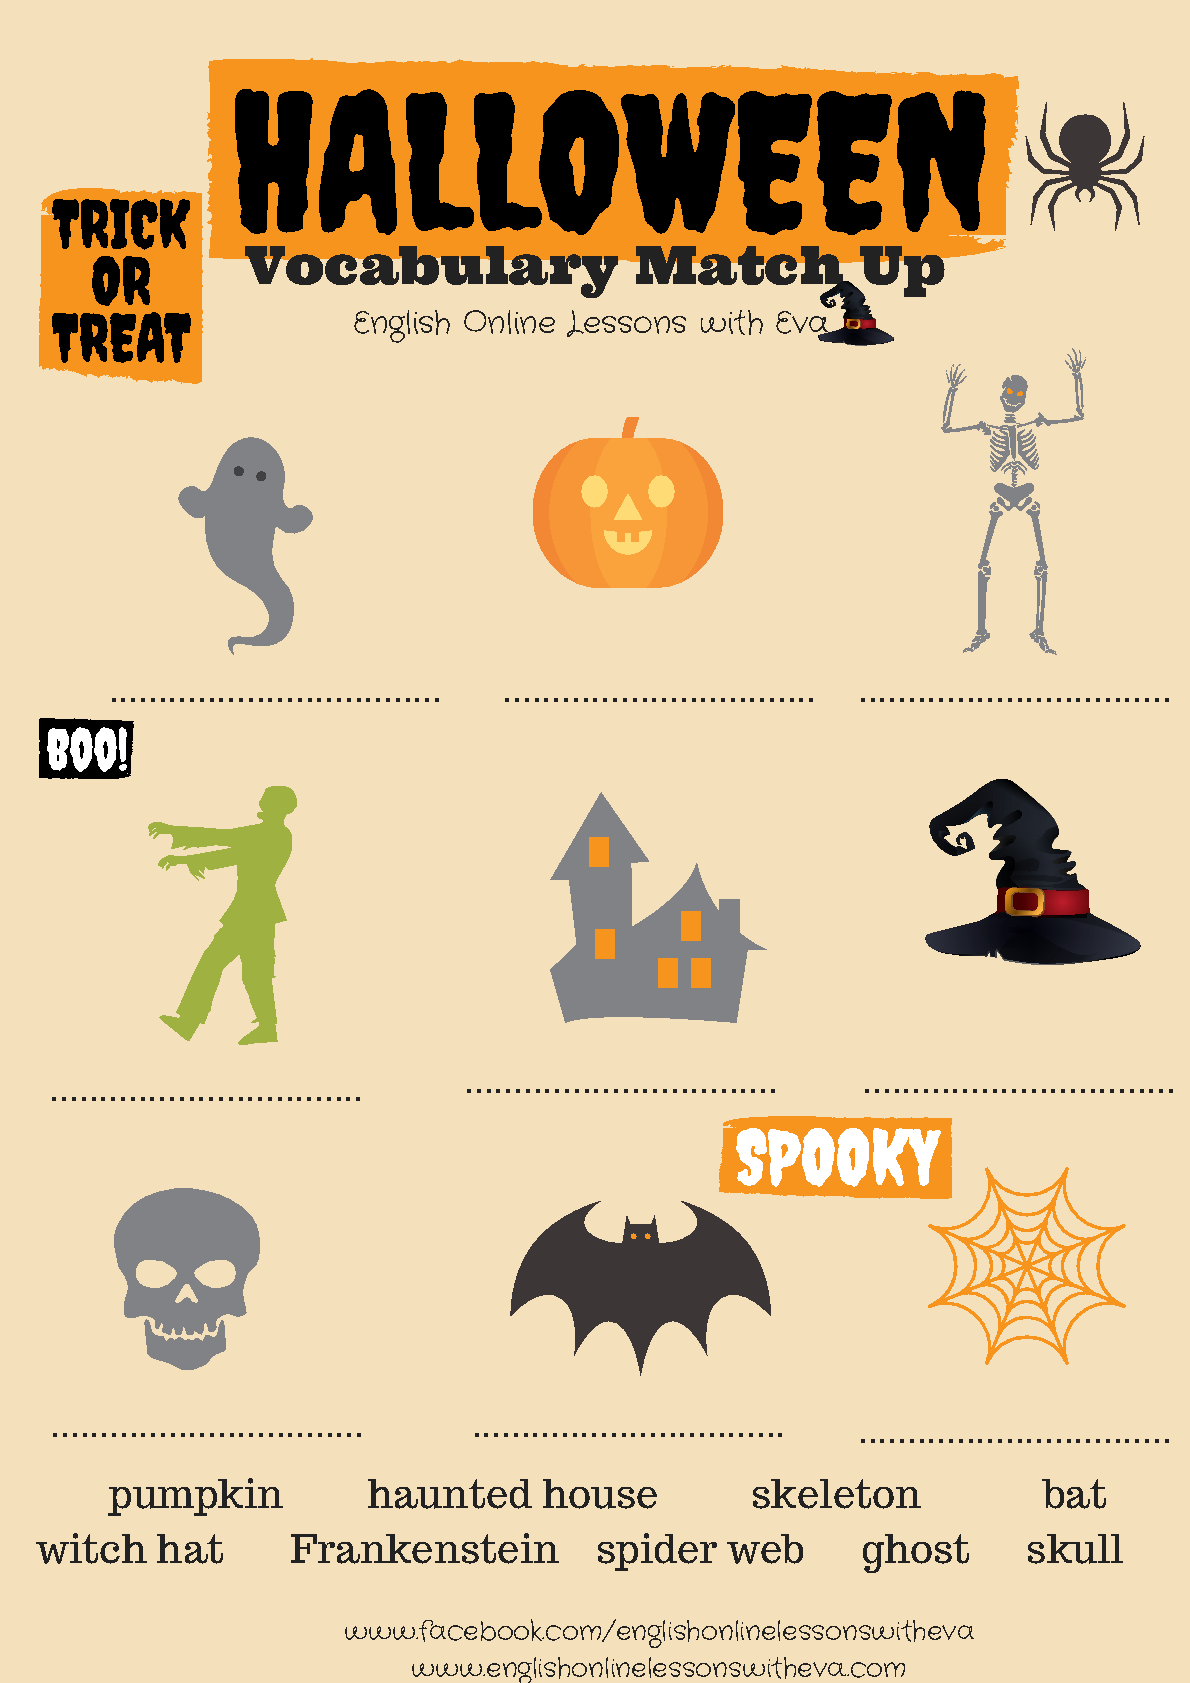 Worksheets Halloween Worksheets For Middle School 214 free halloween worksheets vocabulary match up